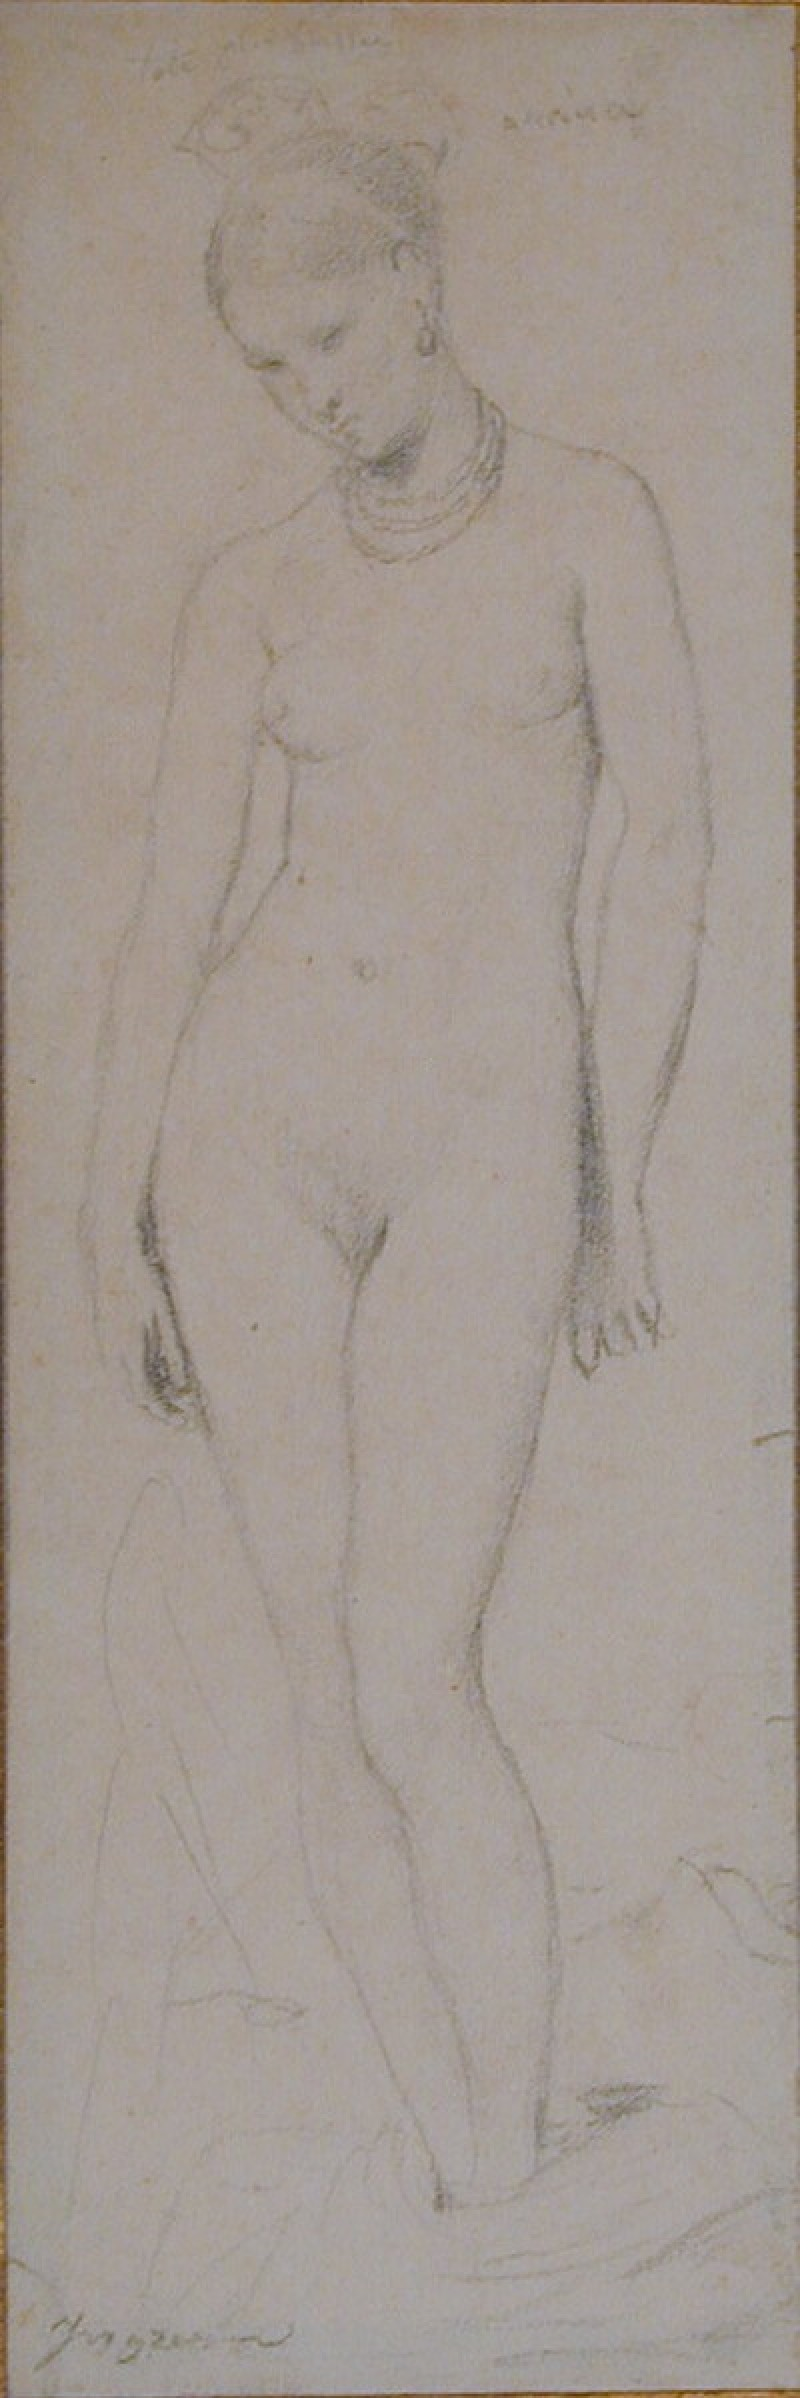 Standing female nude, wearing a cap and necklace